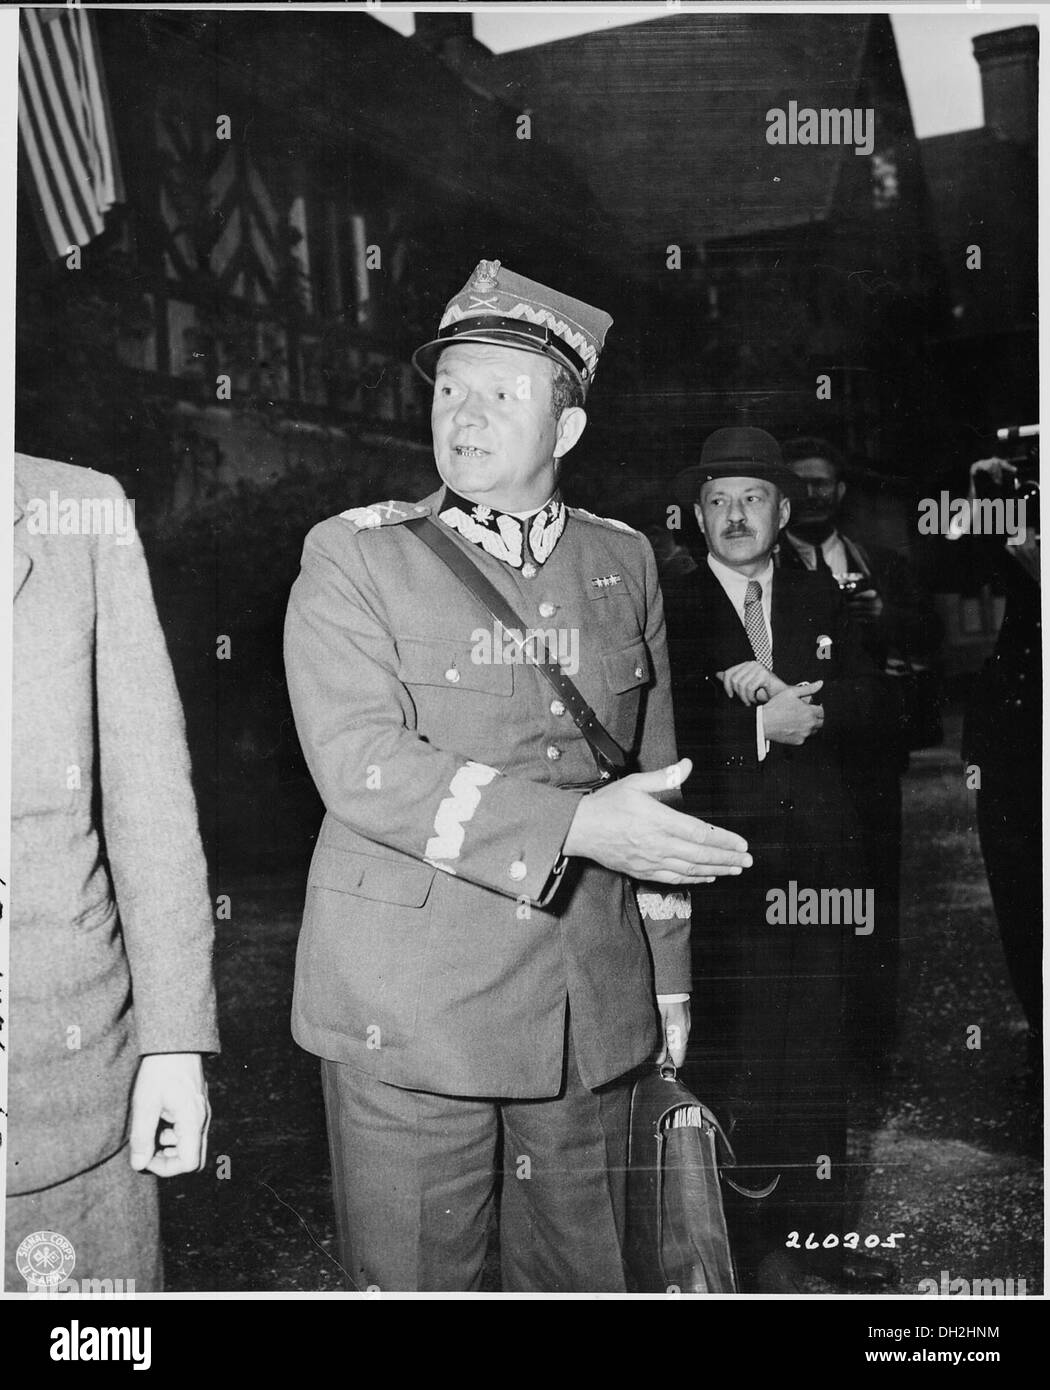 Marshal Zymirski, Polish Army officer, leaving the Cecilienhof Palace during the Potsdam Conference in Germany. - Stock Image